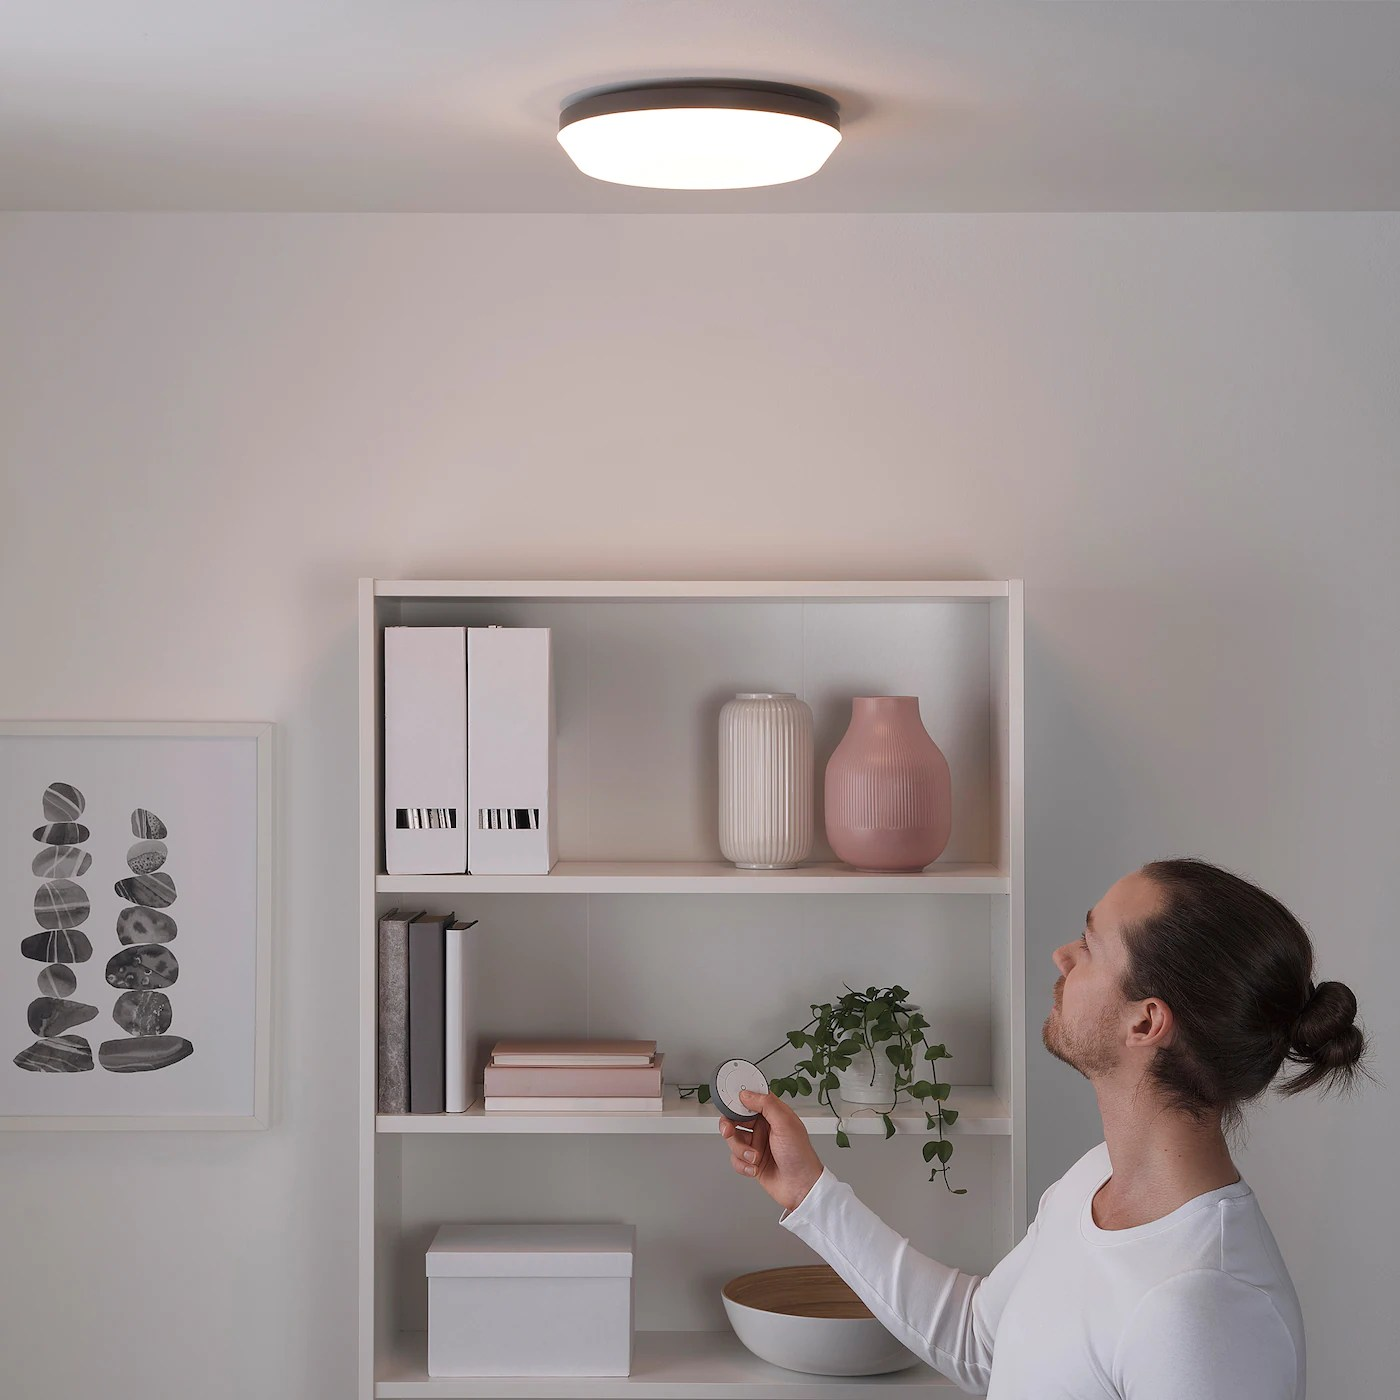 osvalla led ceiling lamp wireless dimmable gray 11